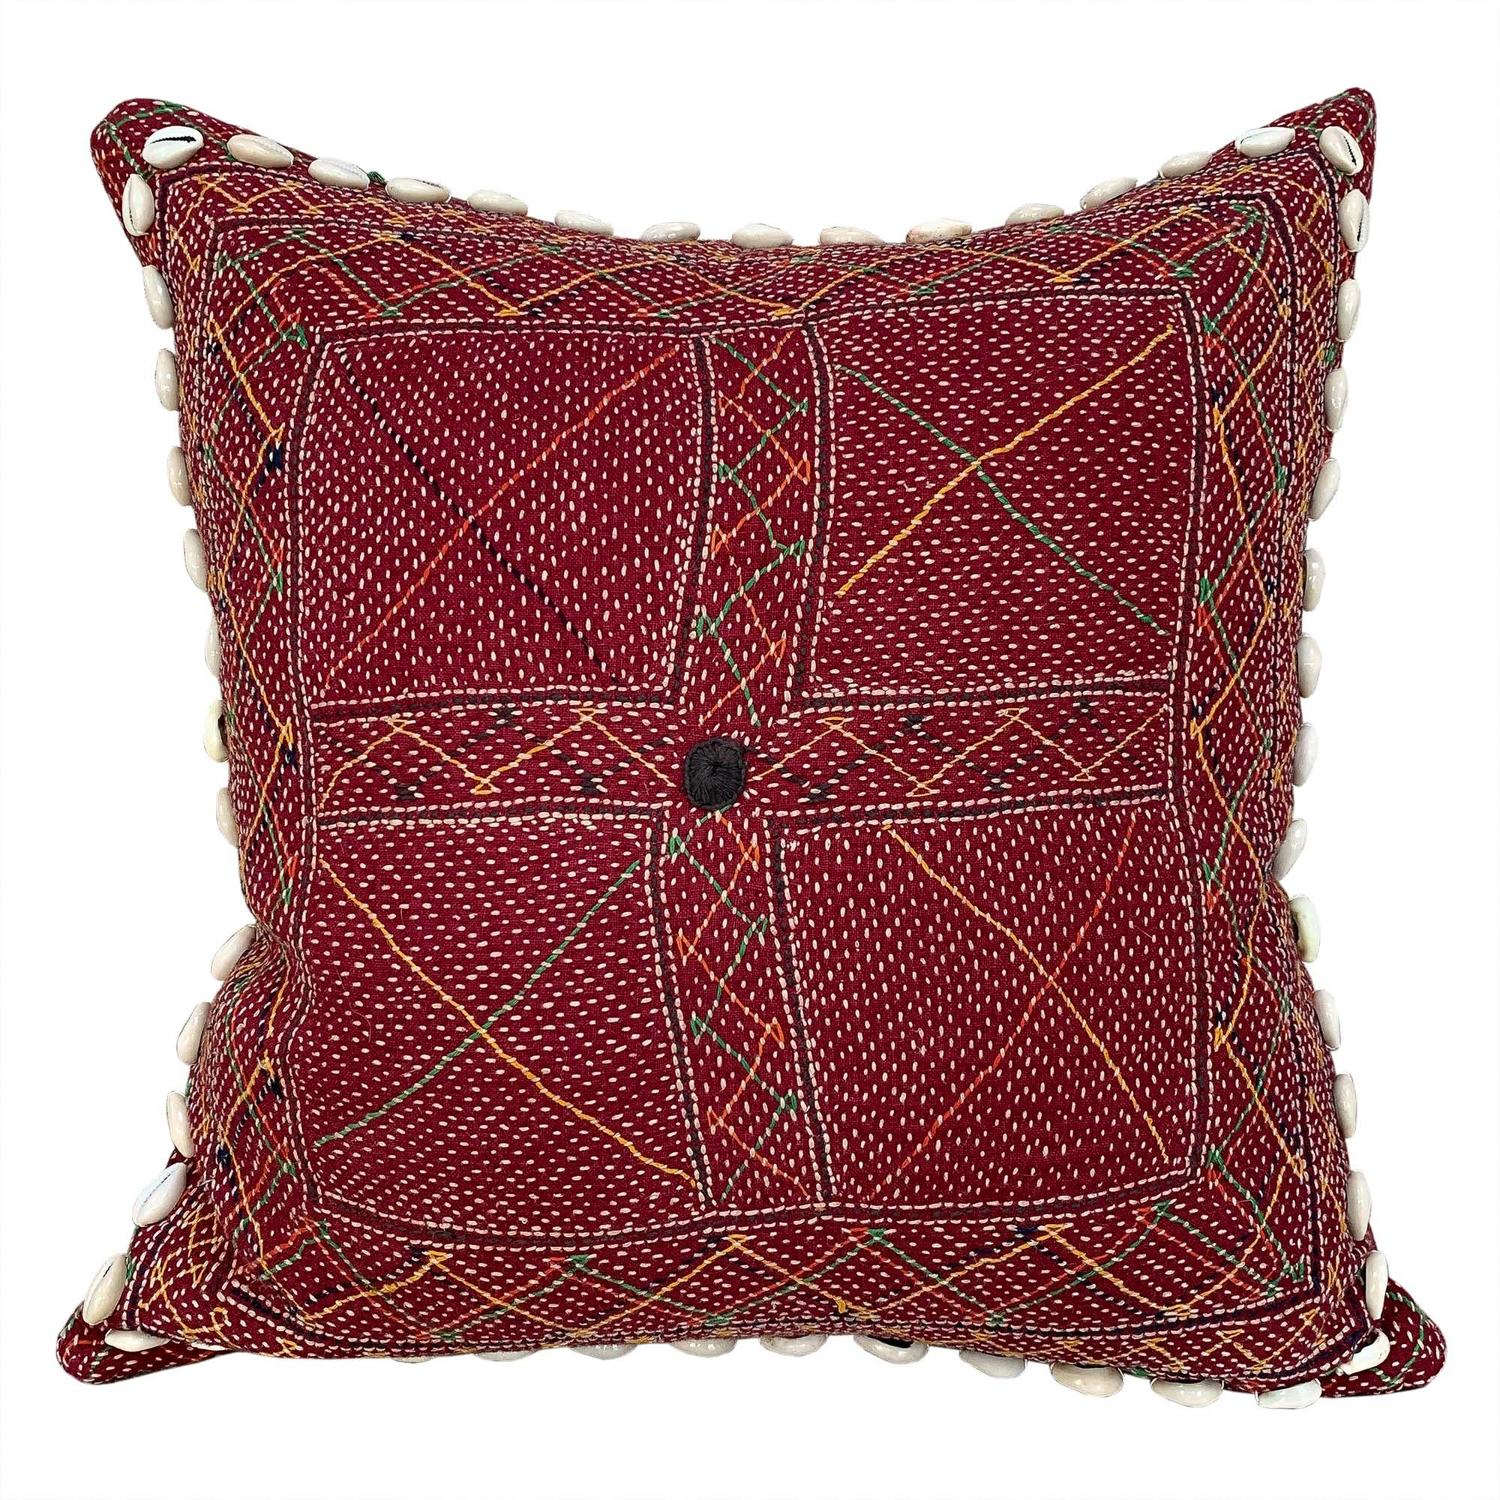 Banjara kalchi cushion with cowries